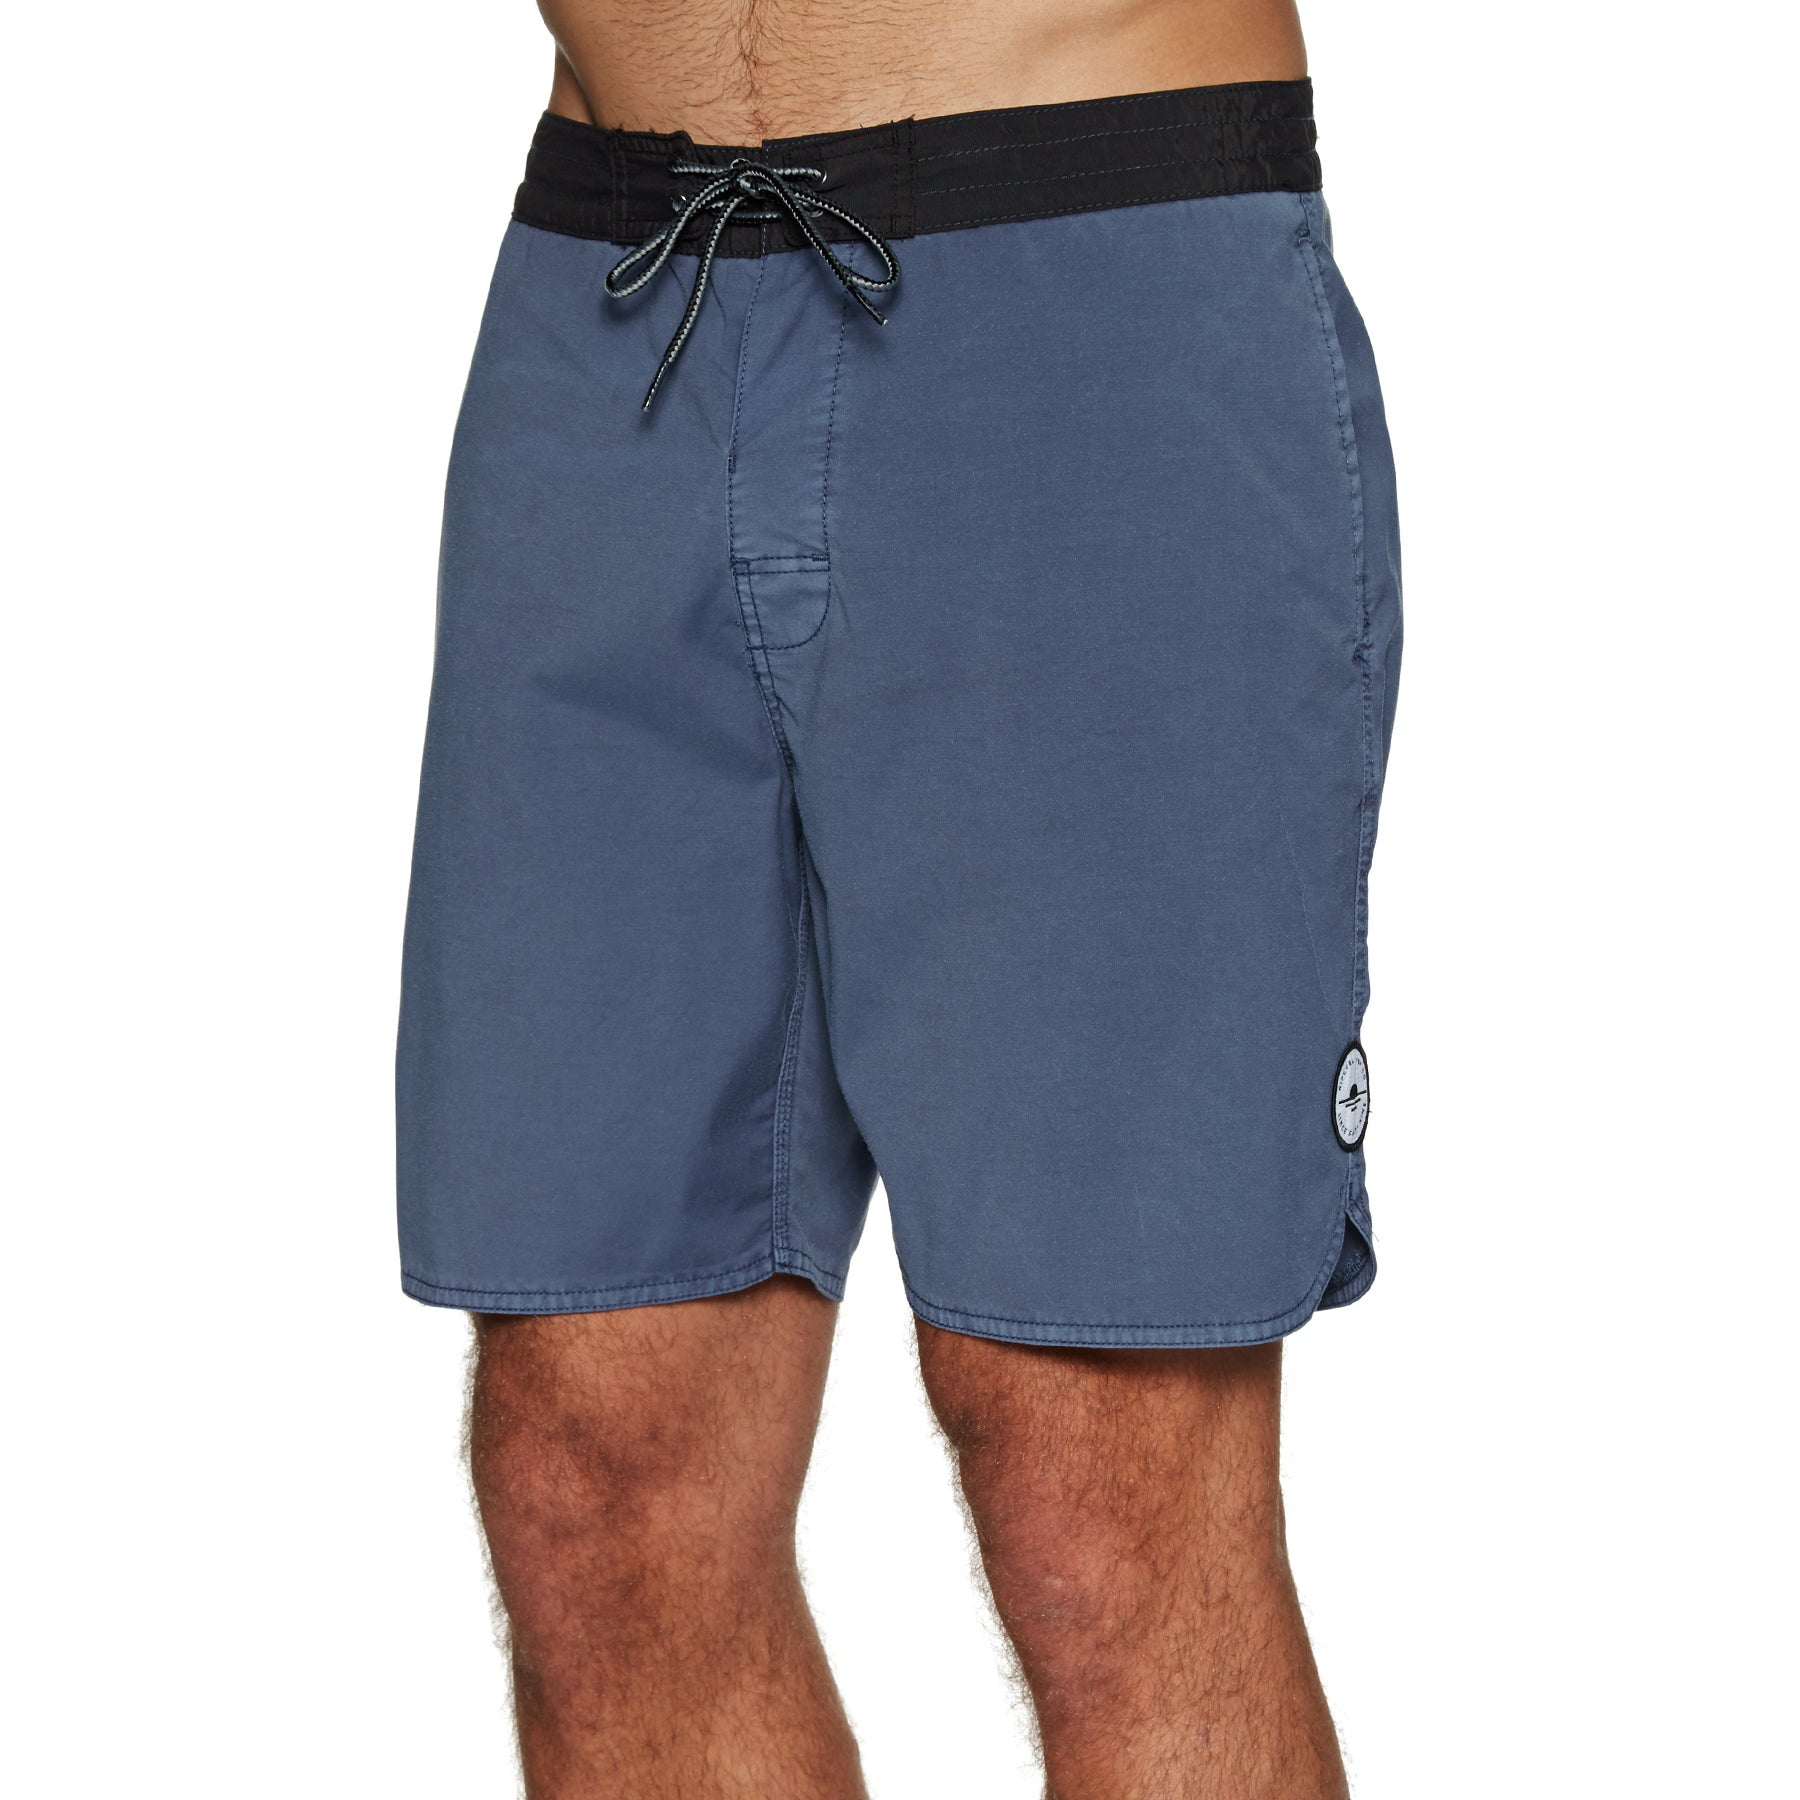 Rip Curl The Wash Layday 19in Boardshorts - Deep Teal